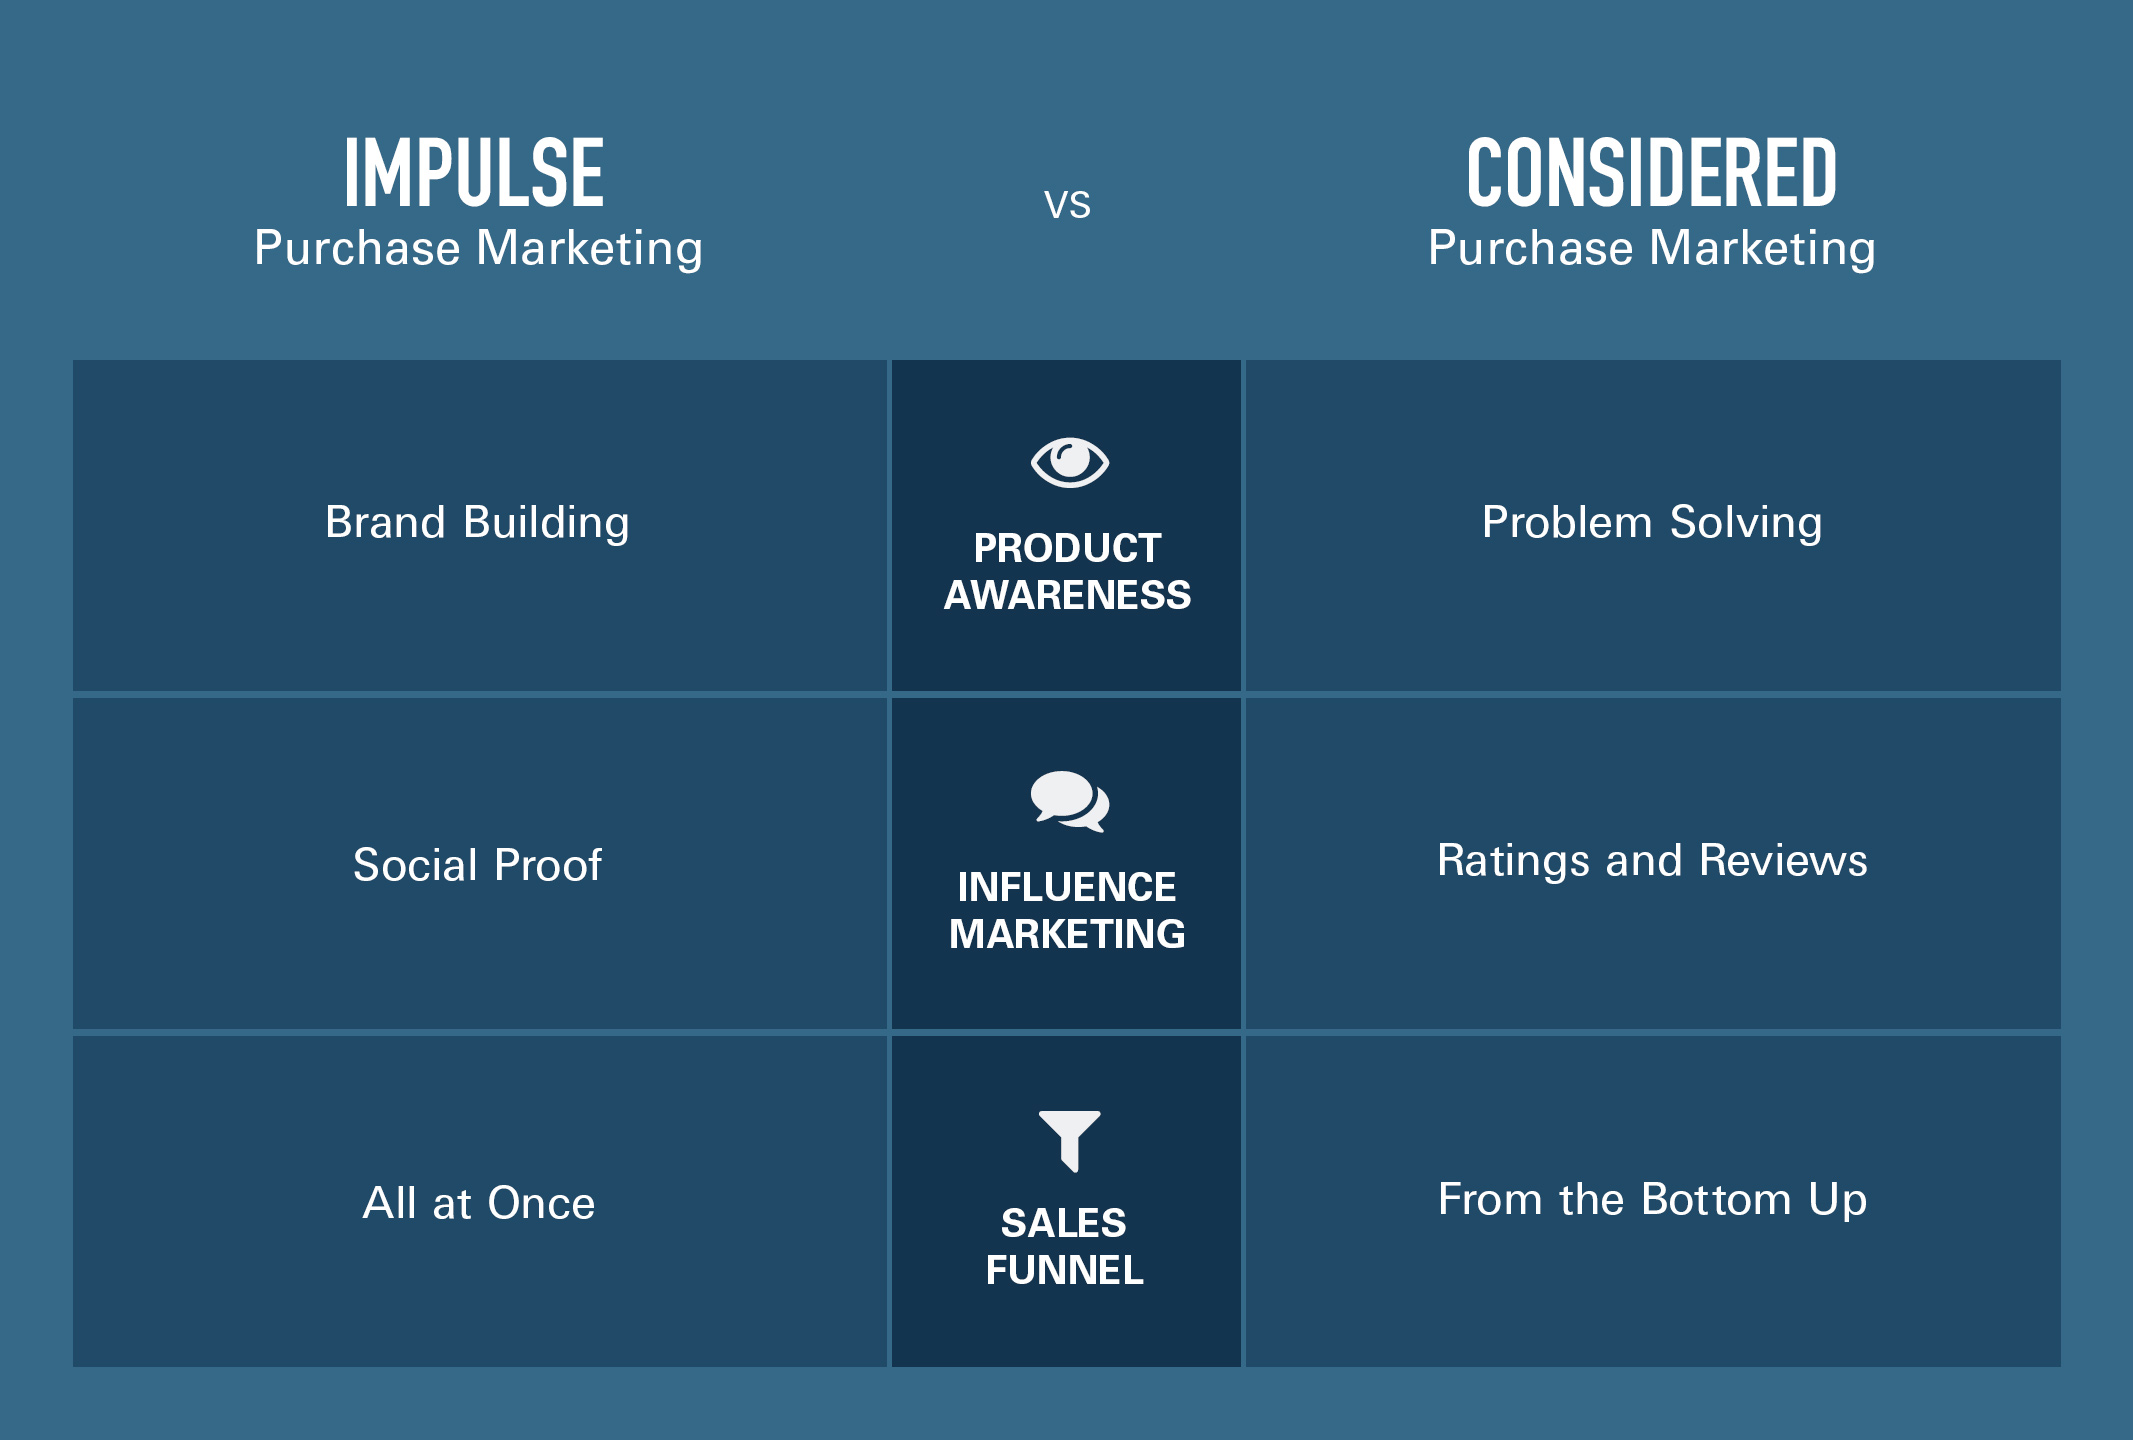 22170a-ICON Blog Assets Impulse vs. Considered Purchase--chart_A_01